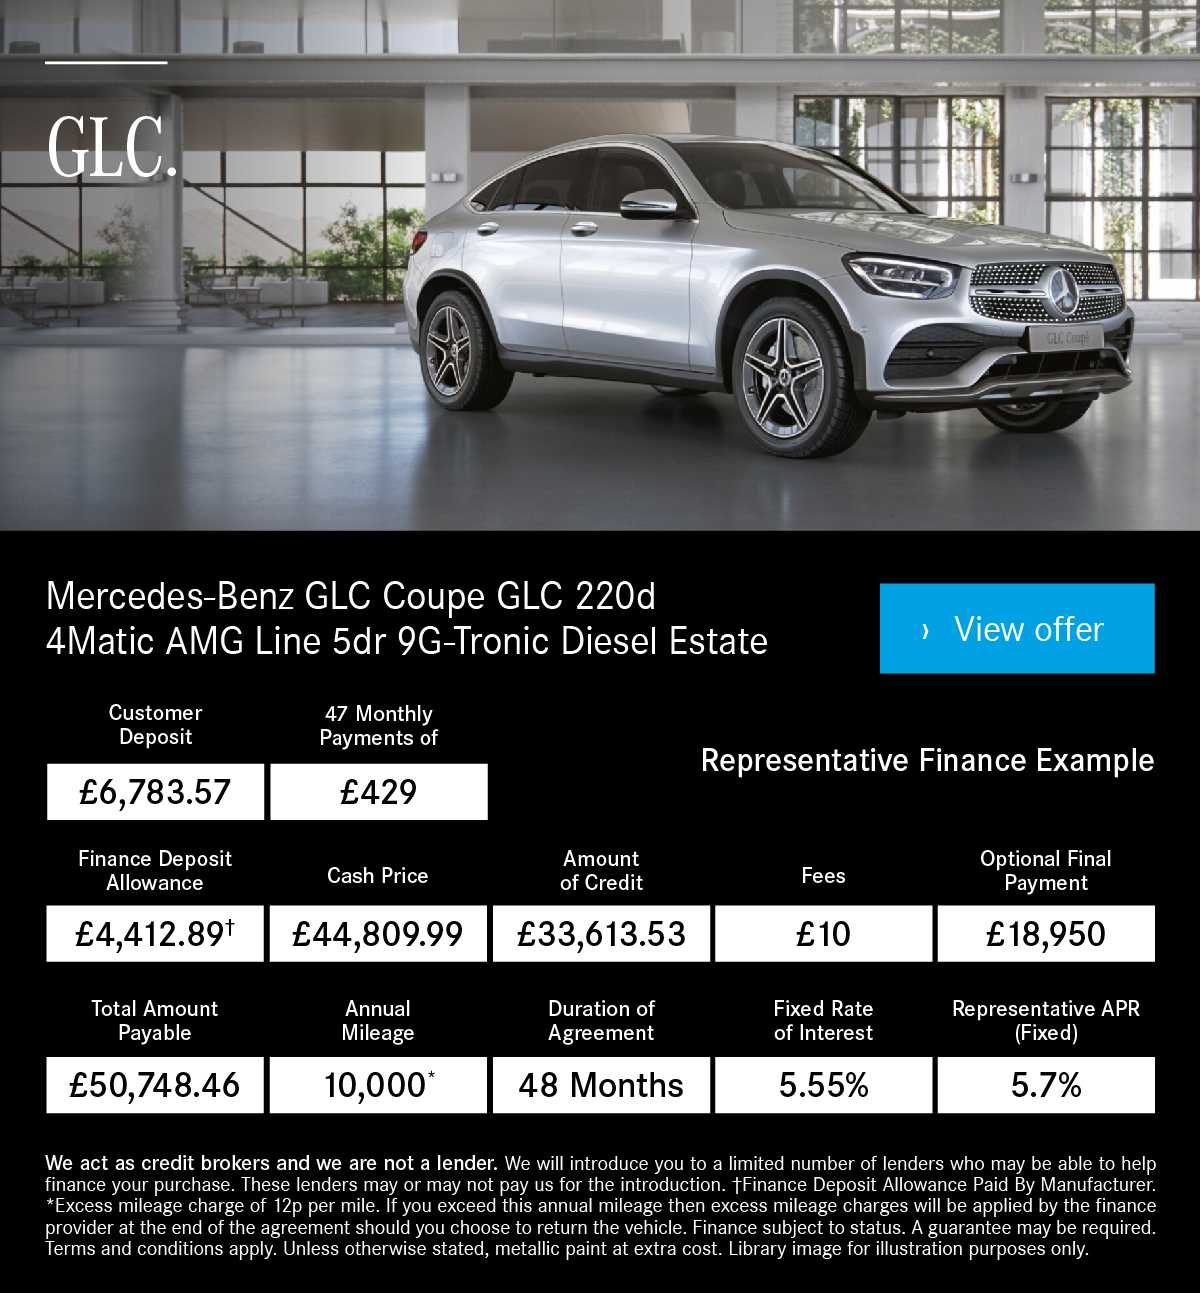 [Mercedes Benz GLC] MB GLC Coupe GLC 220d 4Matic AMG Line 170719 Banner 1